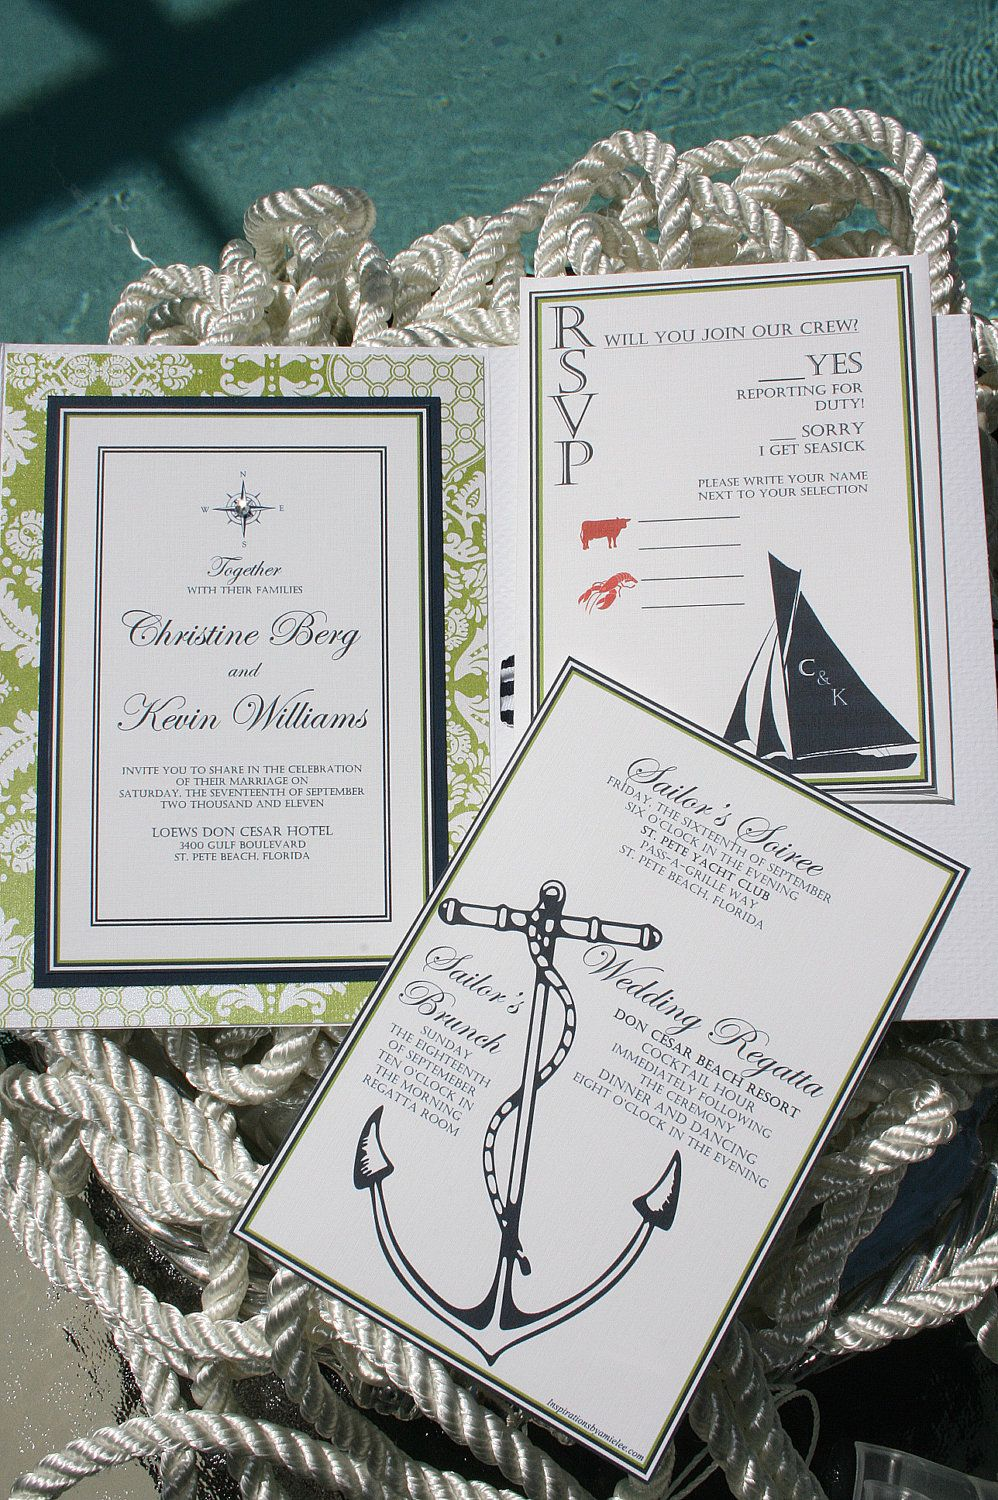 Nautical Wedding Invitations - Tying the Knot | Nautical wedding ...